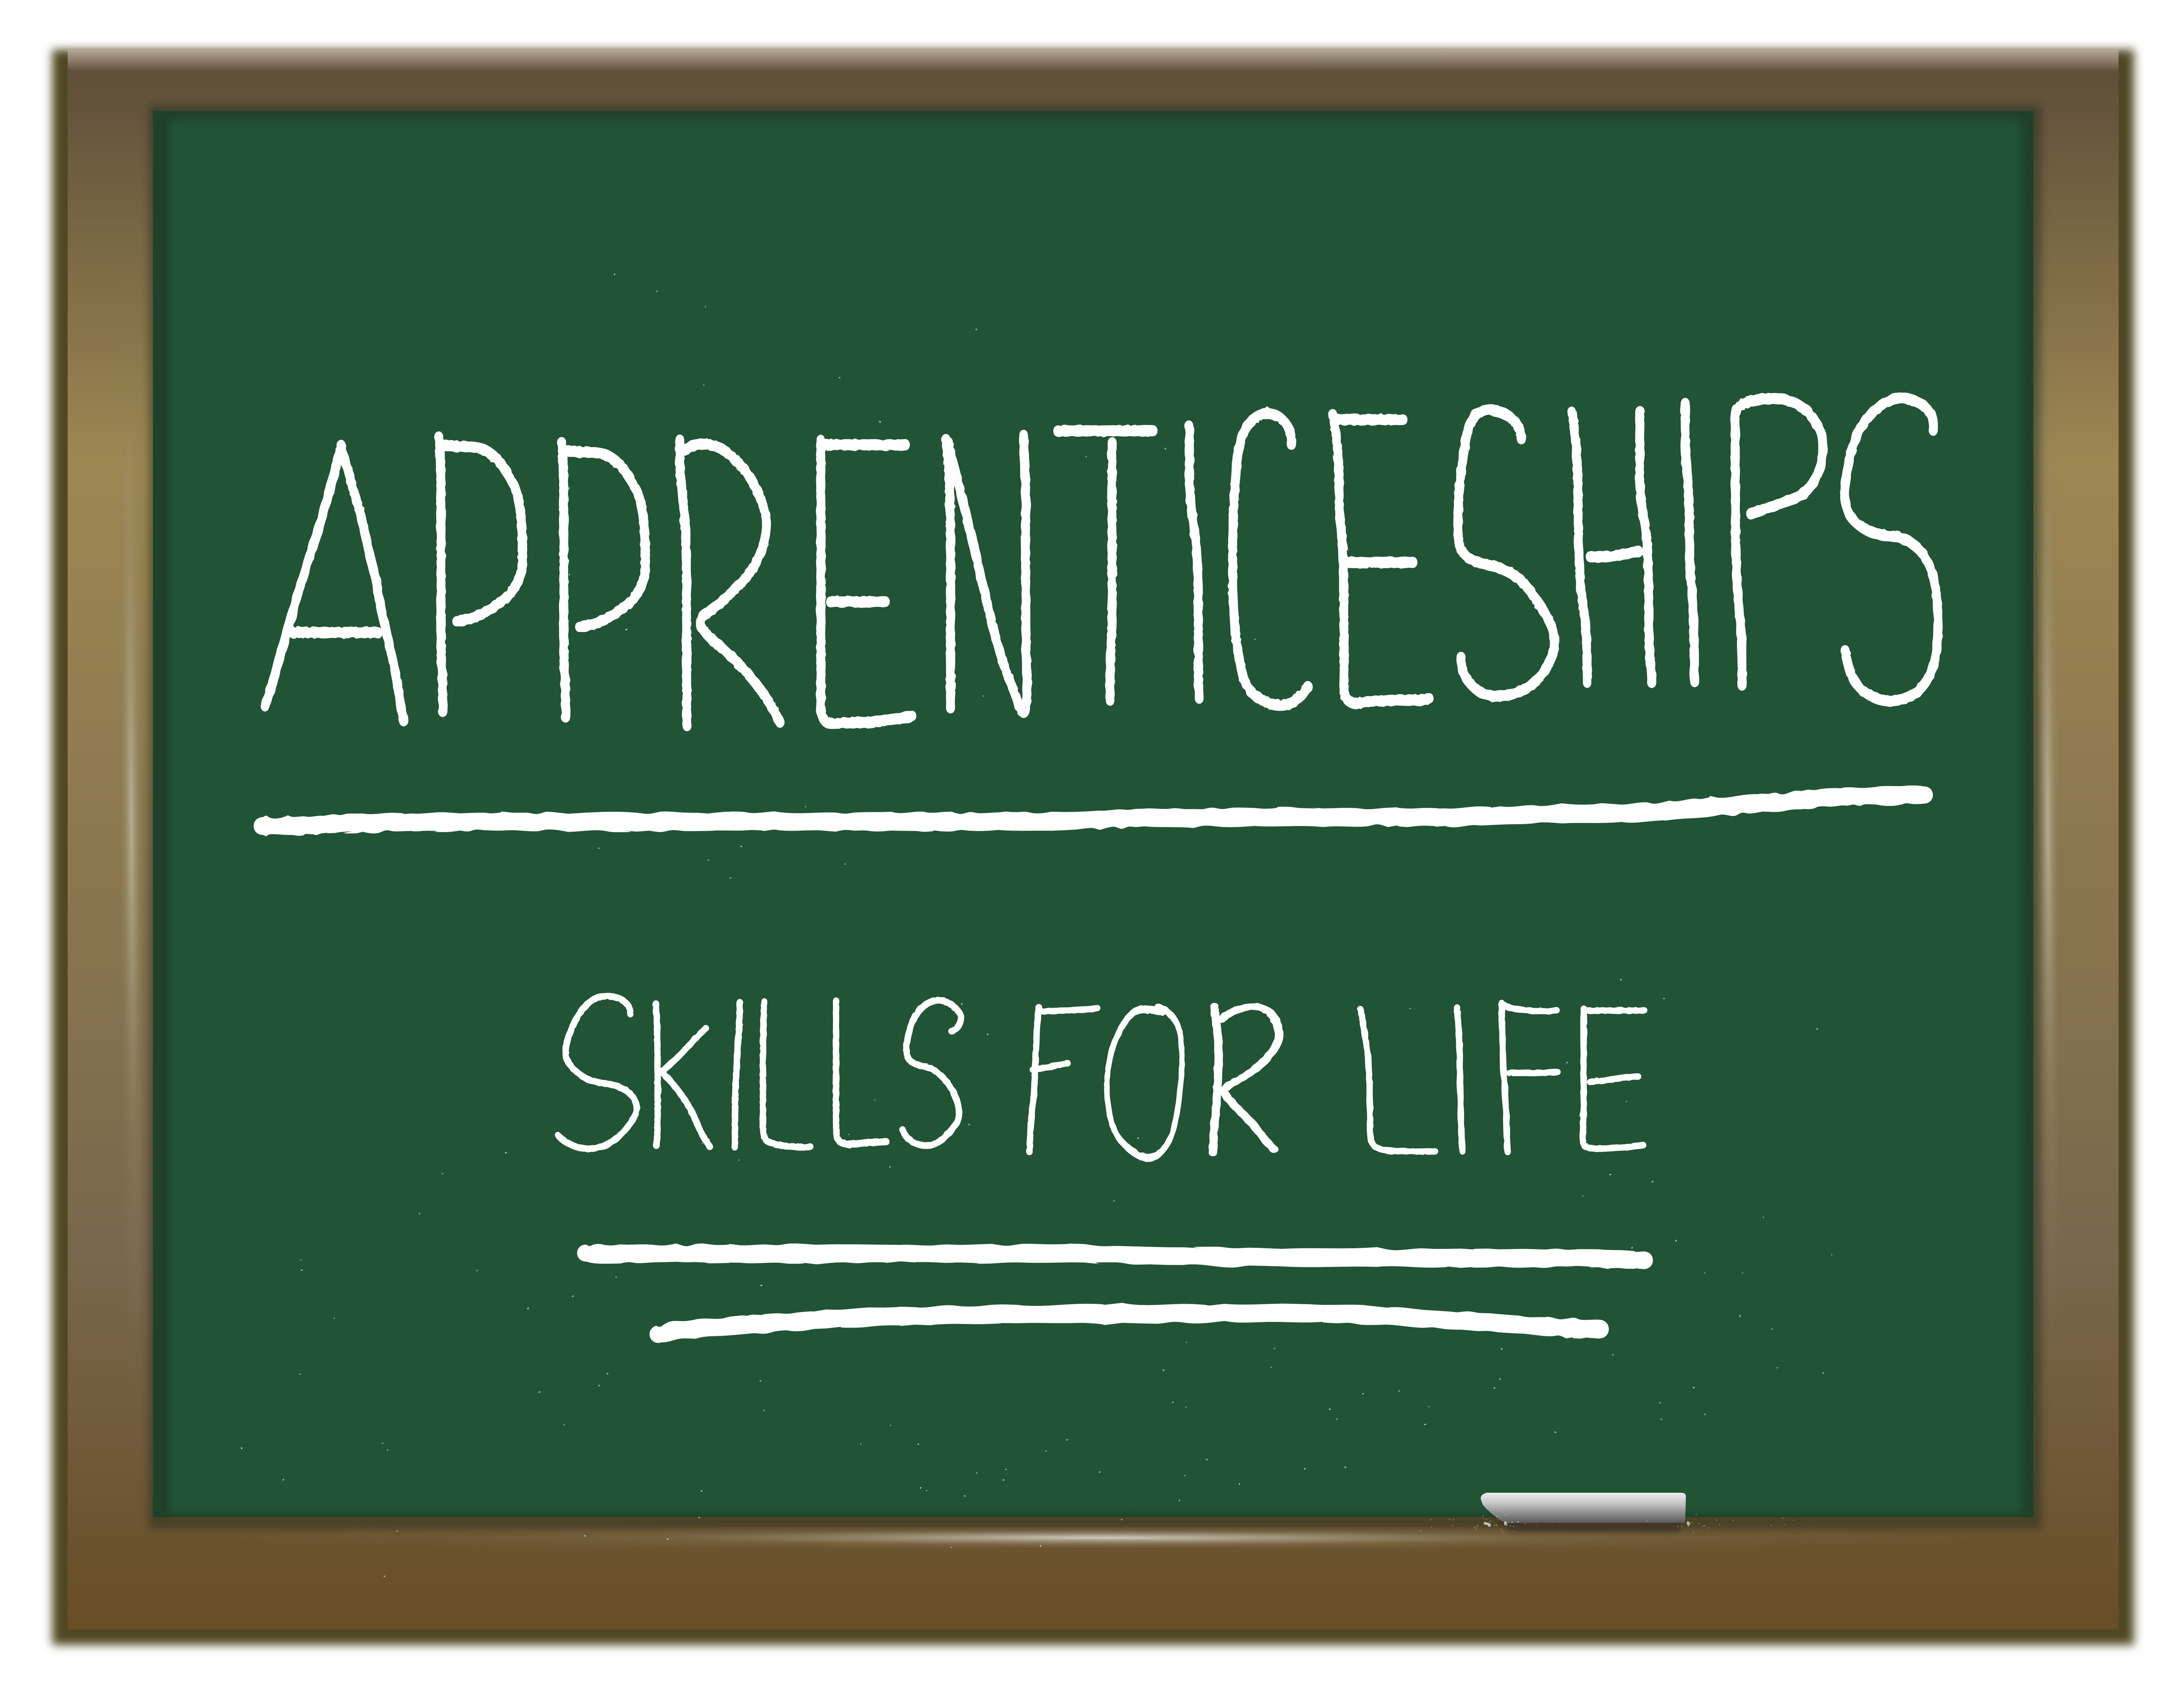 http://www.pexhurst.co.uk/wp-content/uploads/2018/10/Apprenticeships.jpg